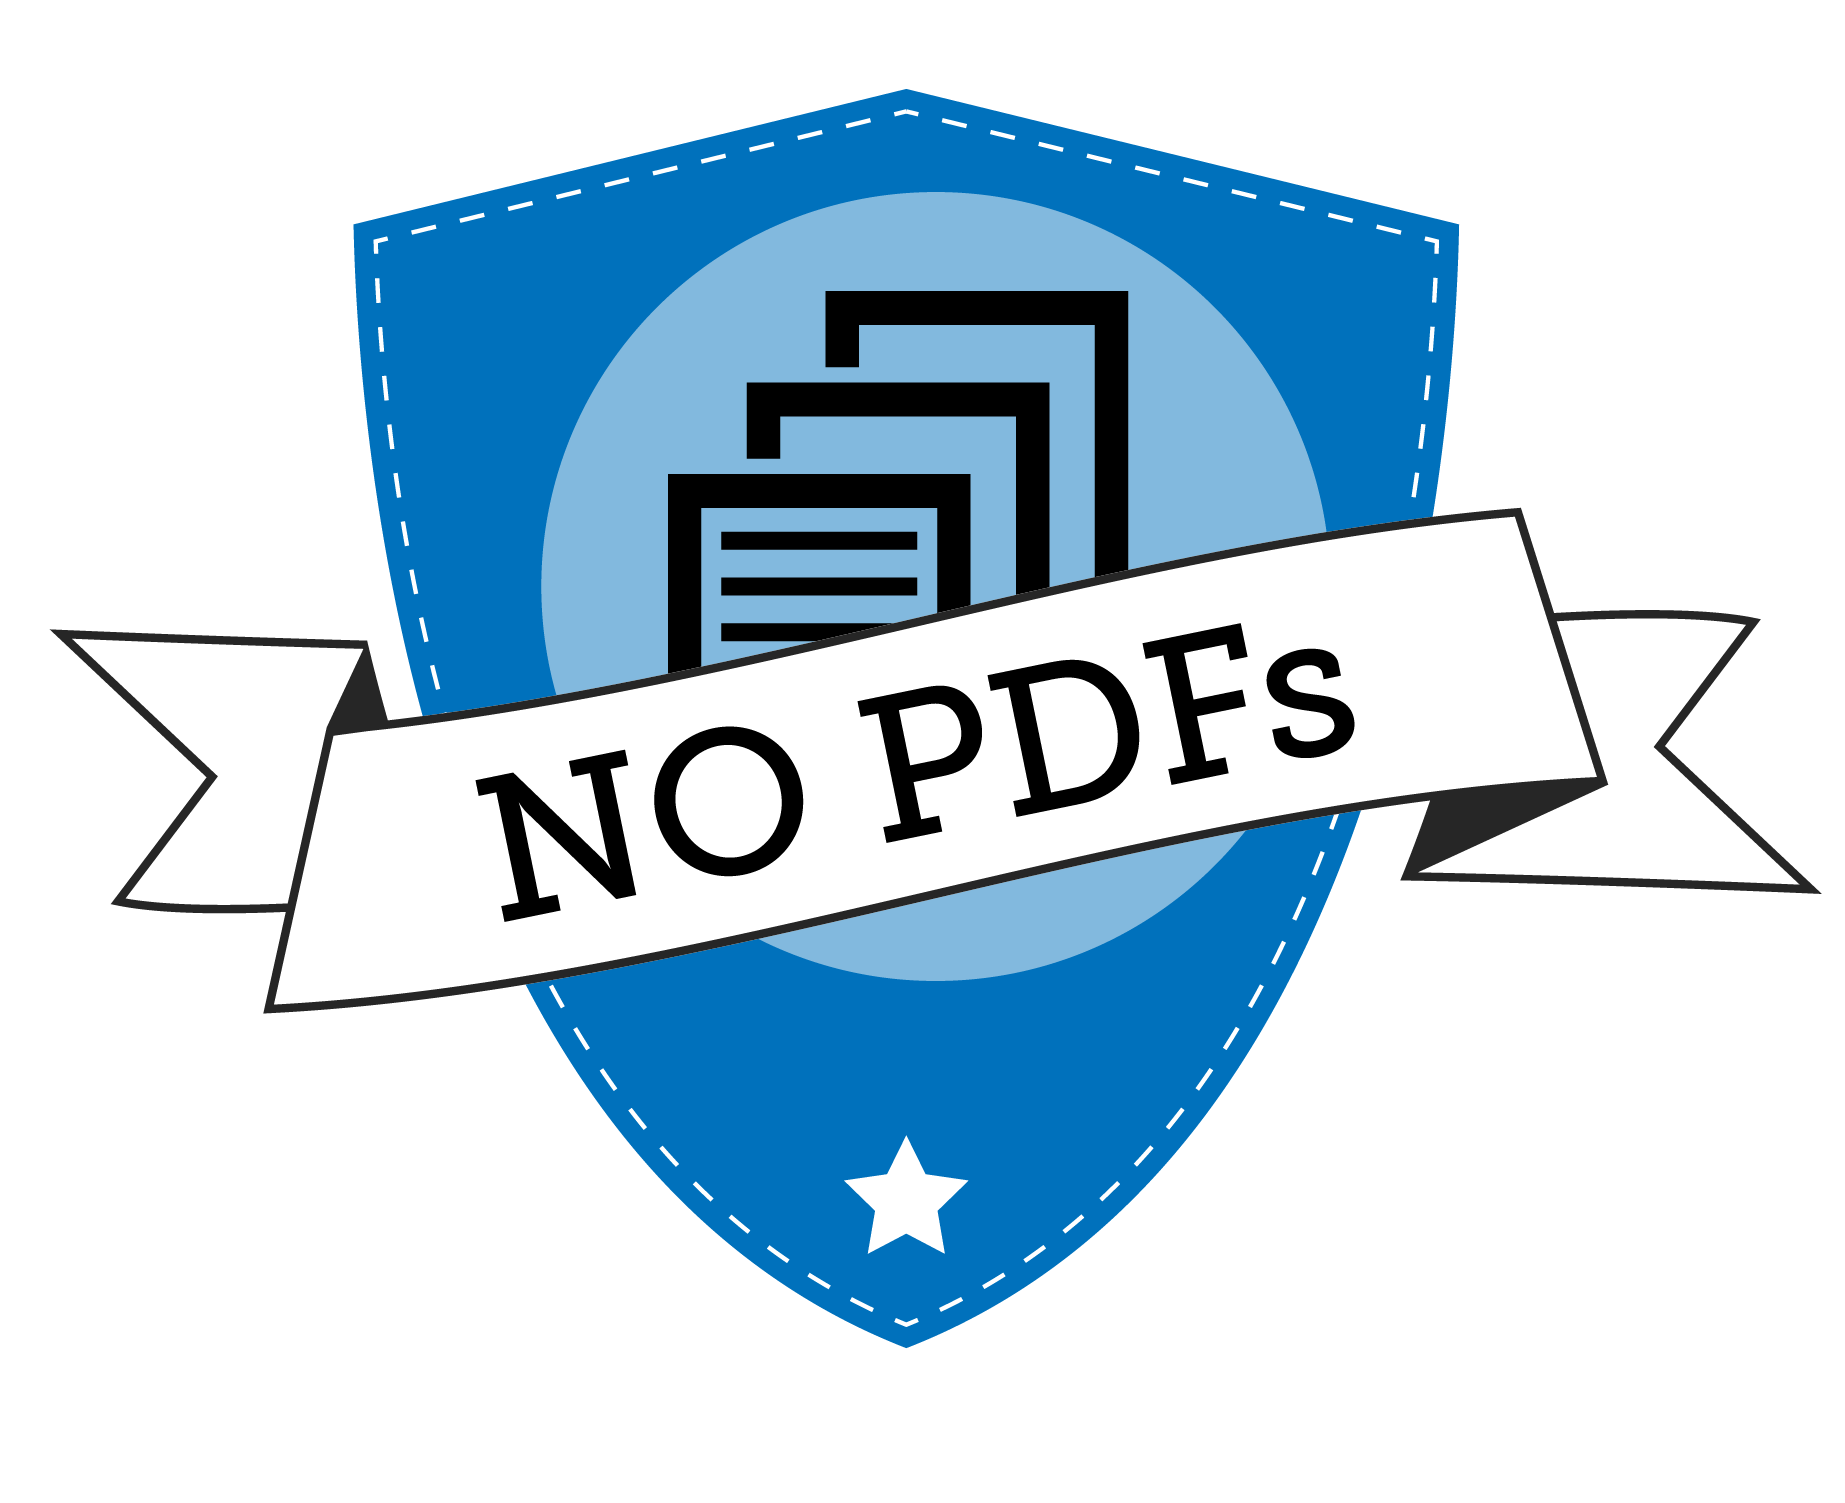 No Pdfs for legal information online - by Margaret Hagan-01